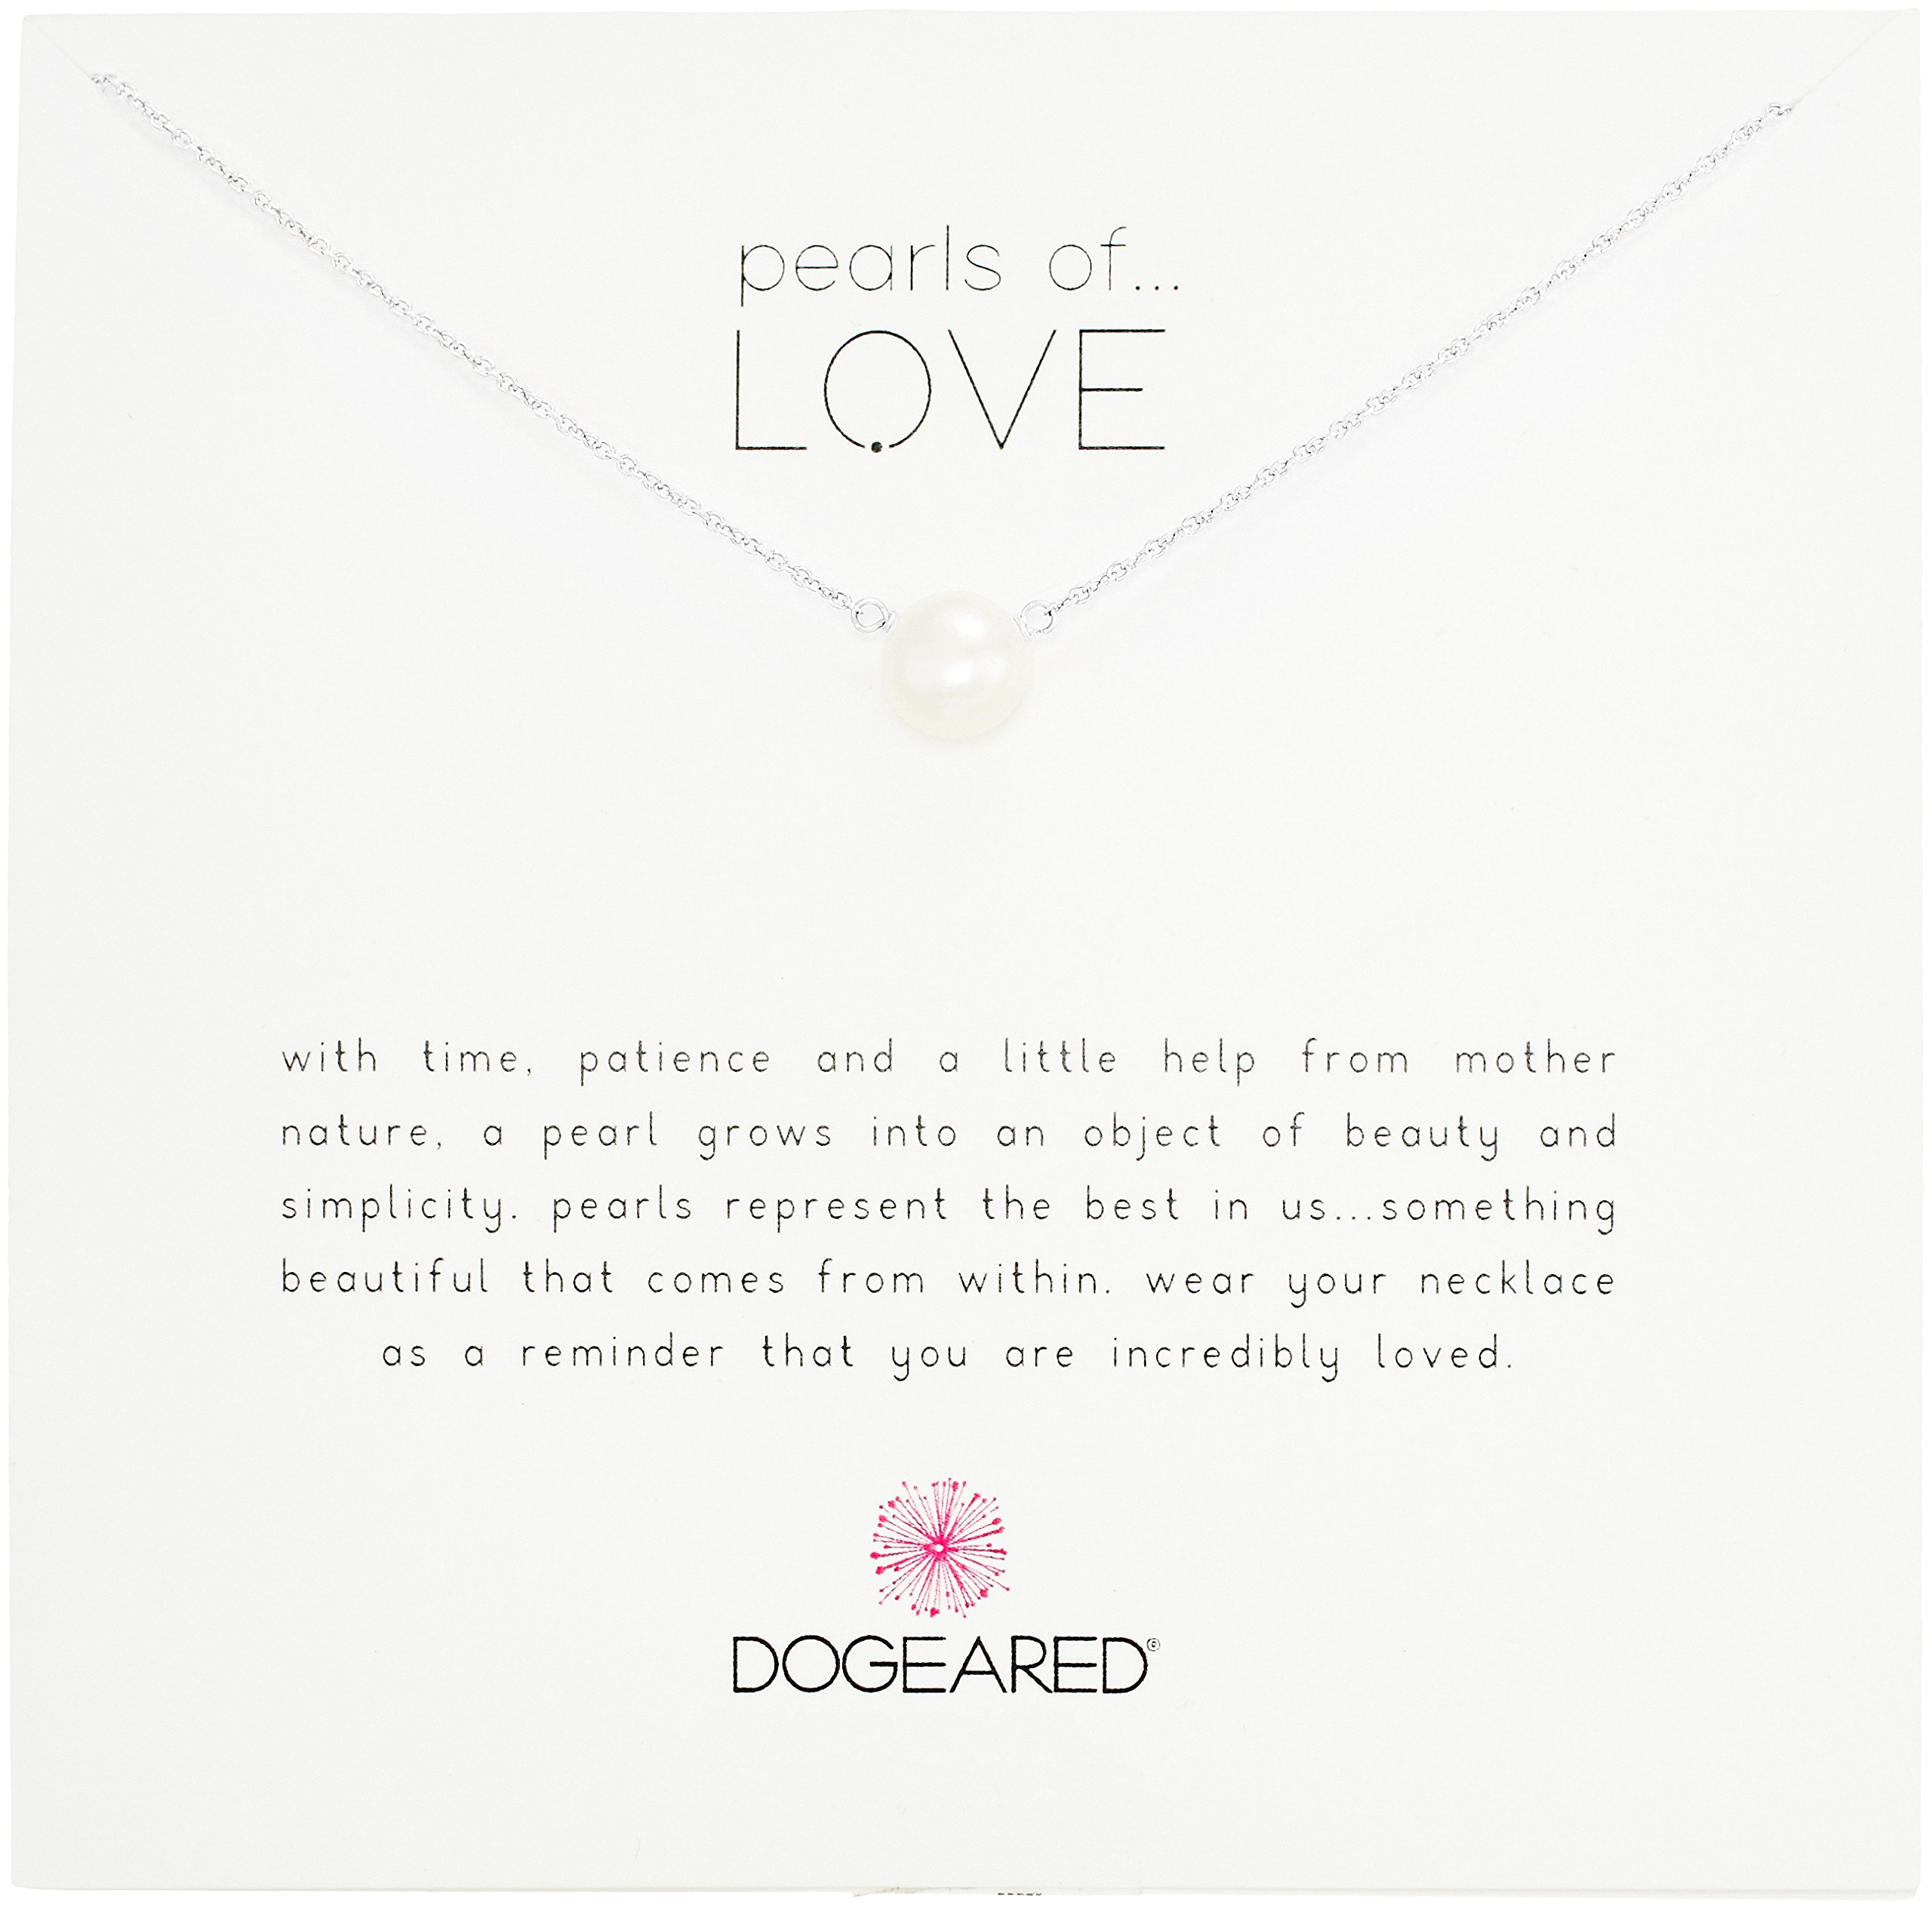 Dogeared Pearls of Love Sterling Silver and Pearl Necklace, 18'' by Dogeared (Image #1)